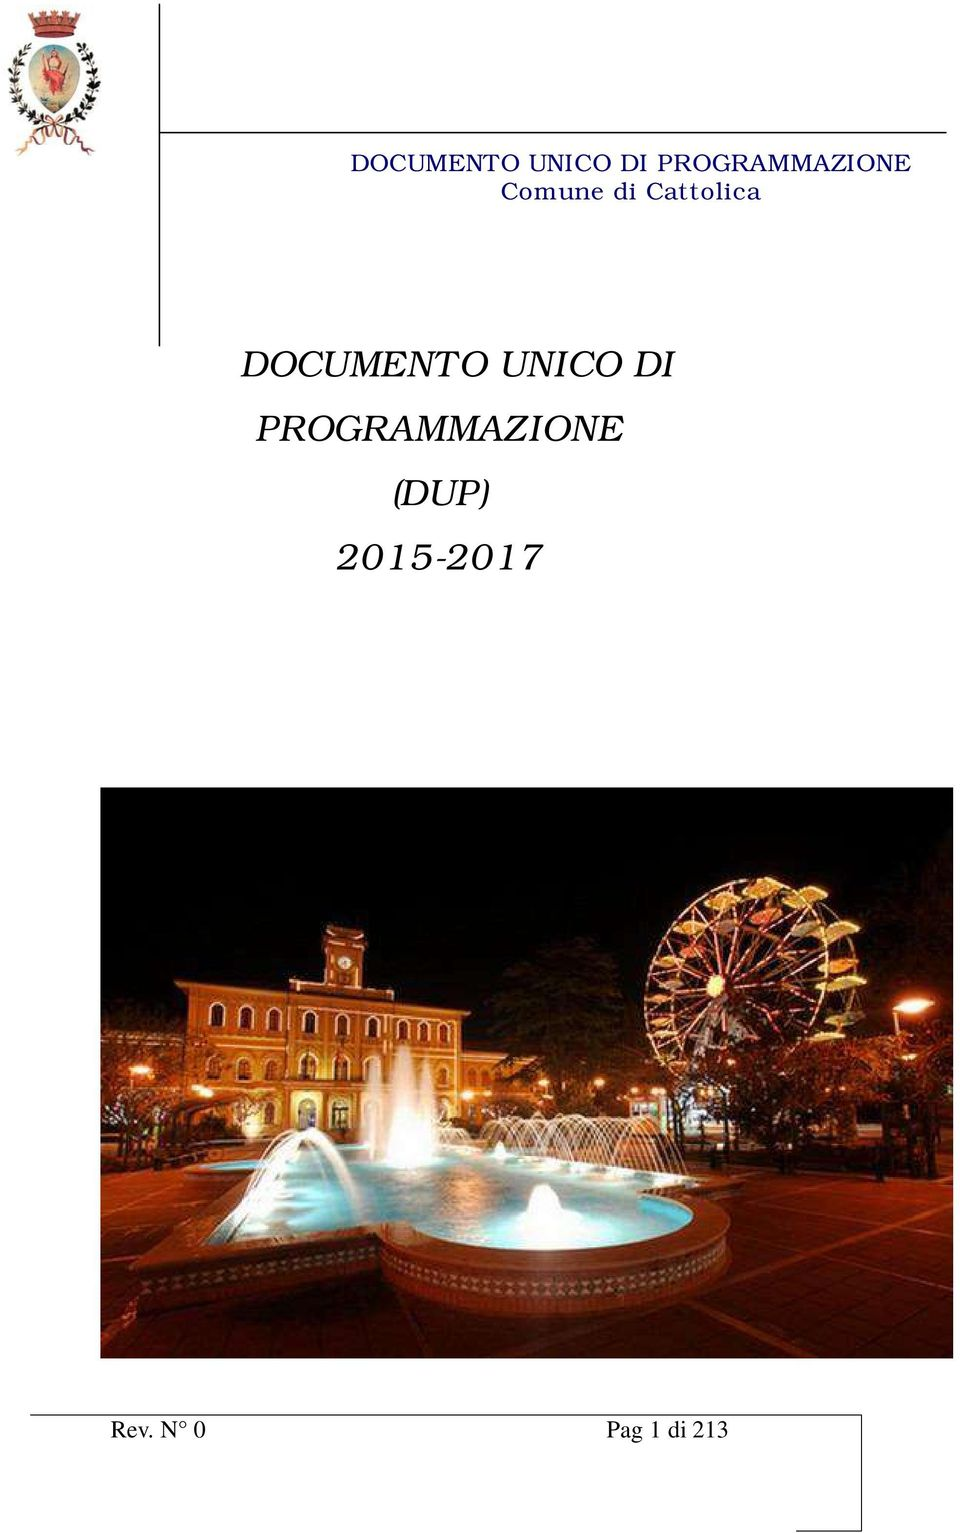 Cattolica DOCUMENTO UNICO DI